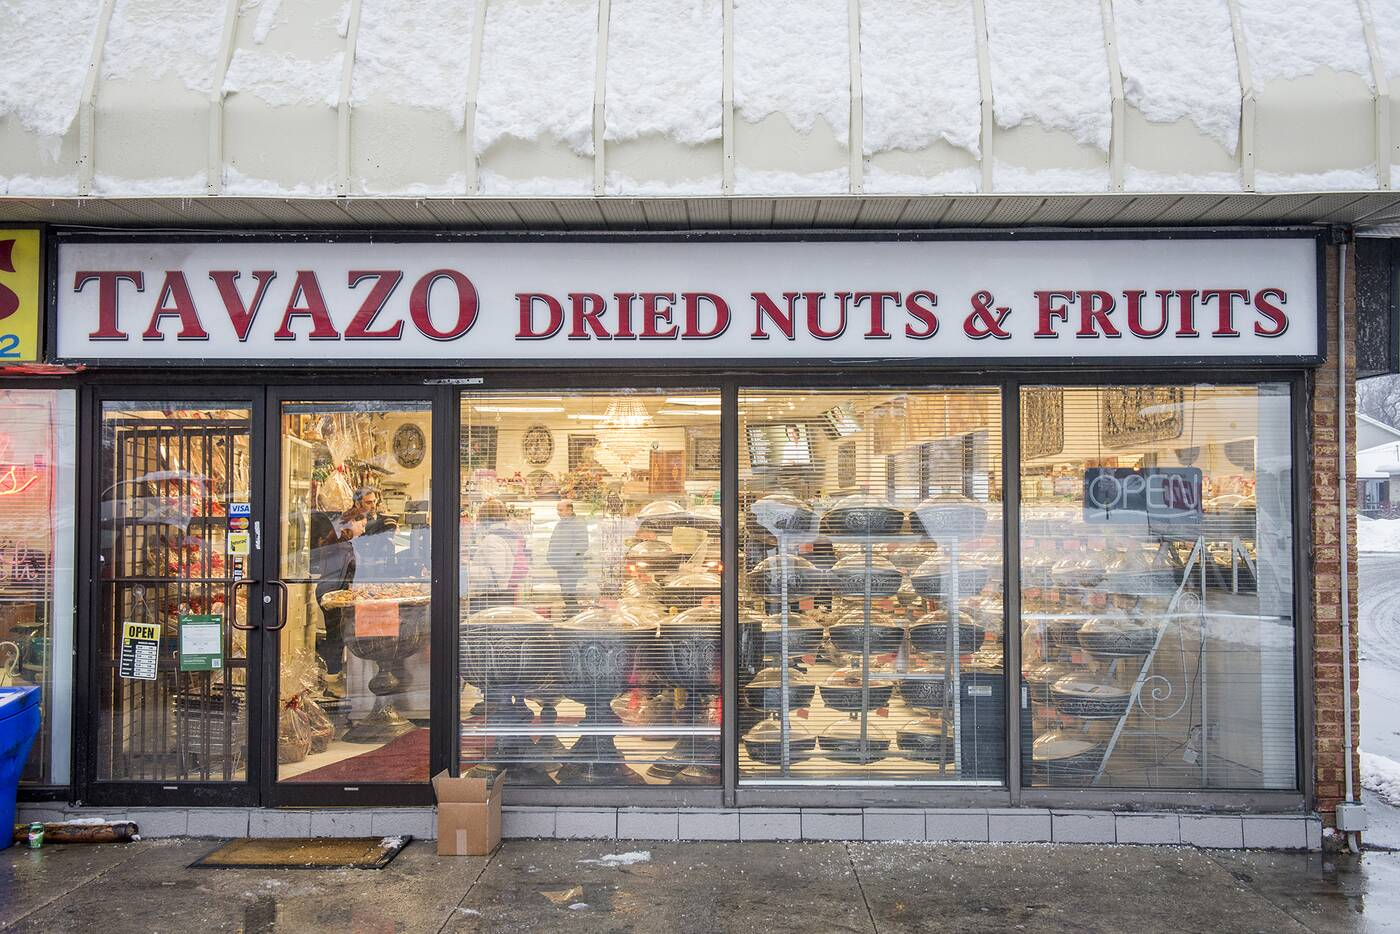 Tavazo nuts fruits Toronto